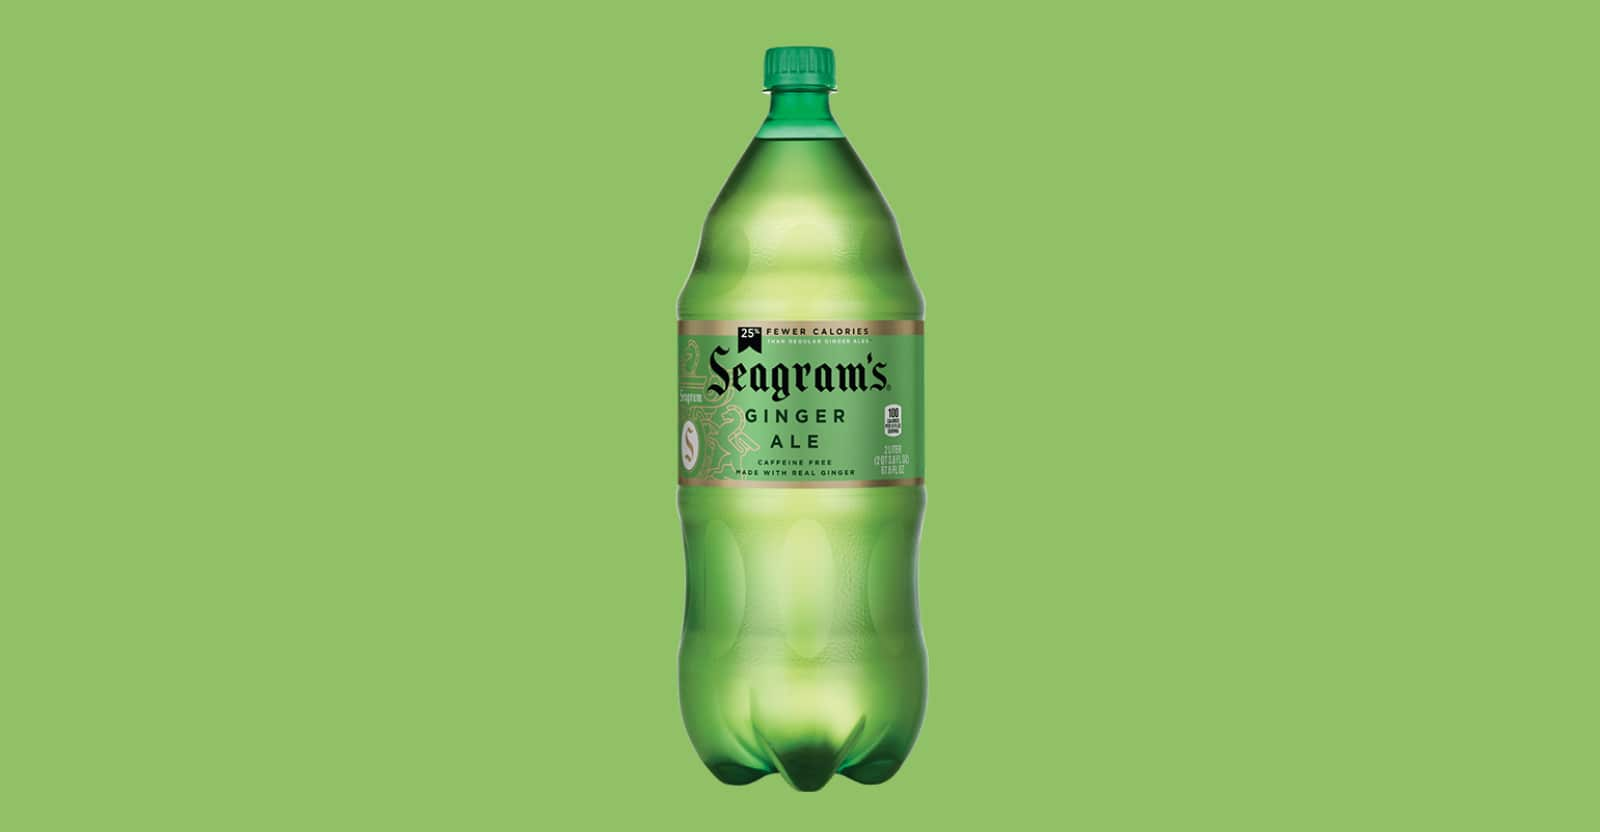 is seagrams gluten-free